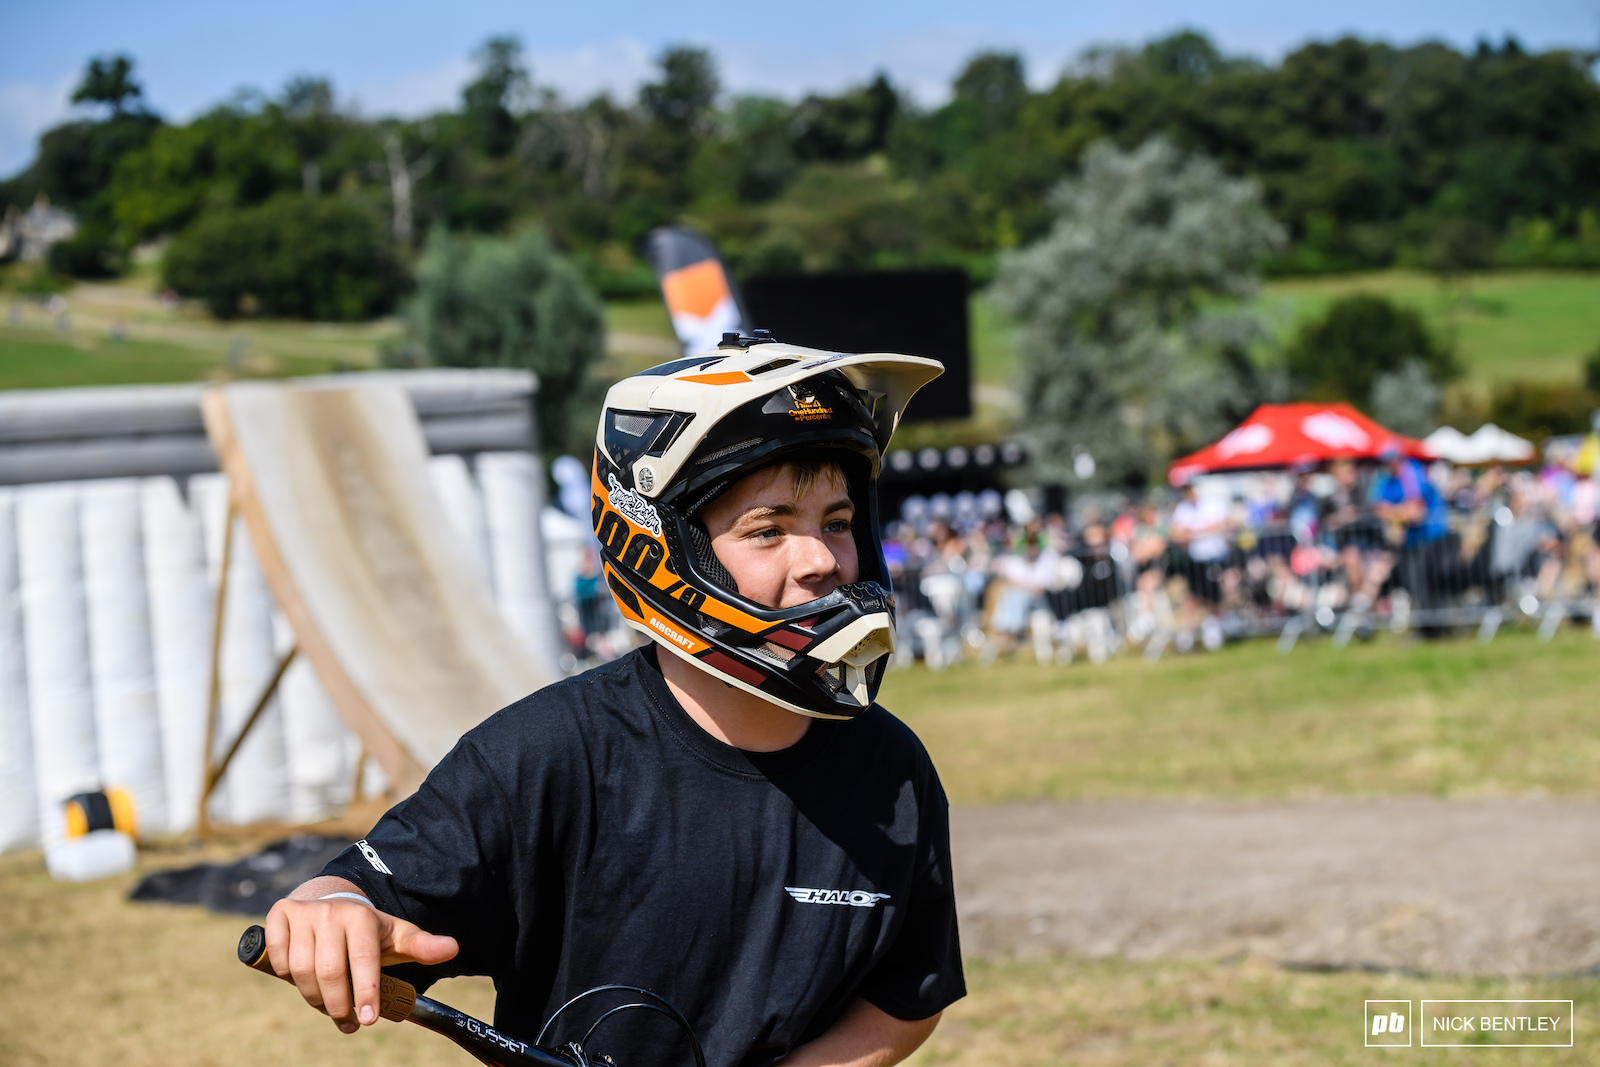 The youngest rider in the Elite Field Fin Davies heading up for his next run